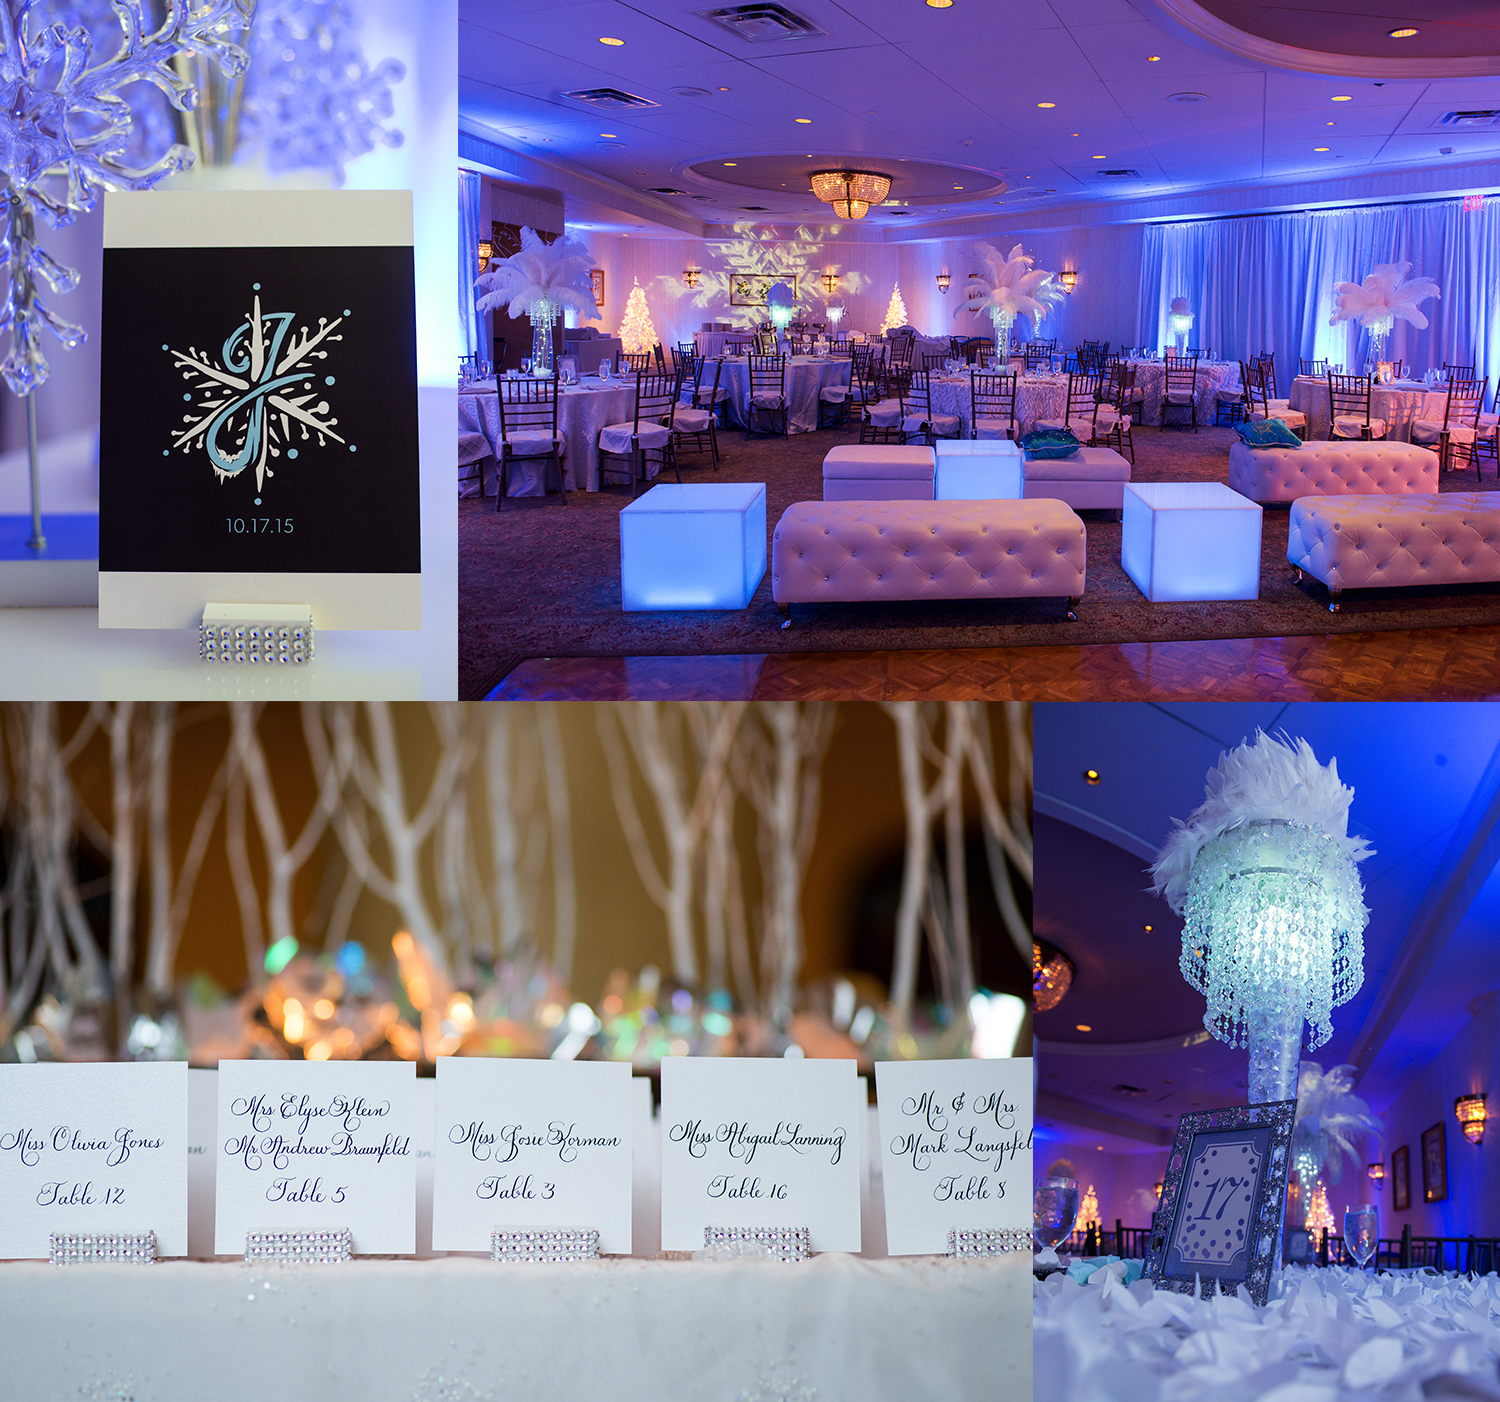 Bar-Bat-Mitzvah-Premier-Philadelphia-Photographer-Details-Winter-Theme-Design-Venue-Snow-Ball-Philmont-Country-Club-All-Around-Entertainment-Patricia-Nino-Enlight